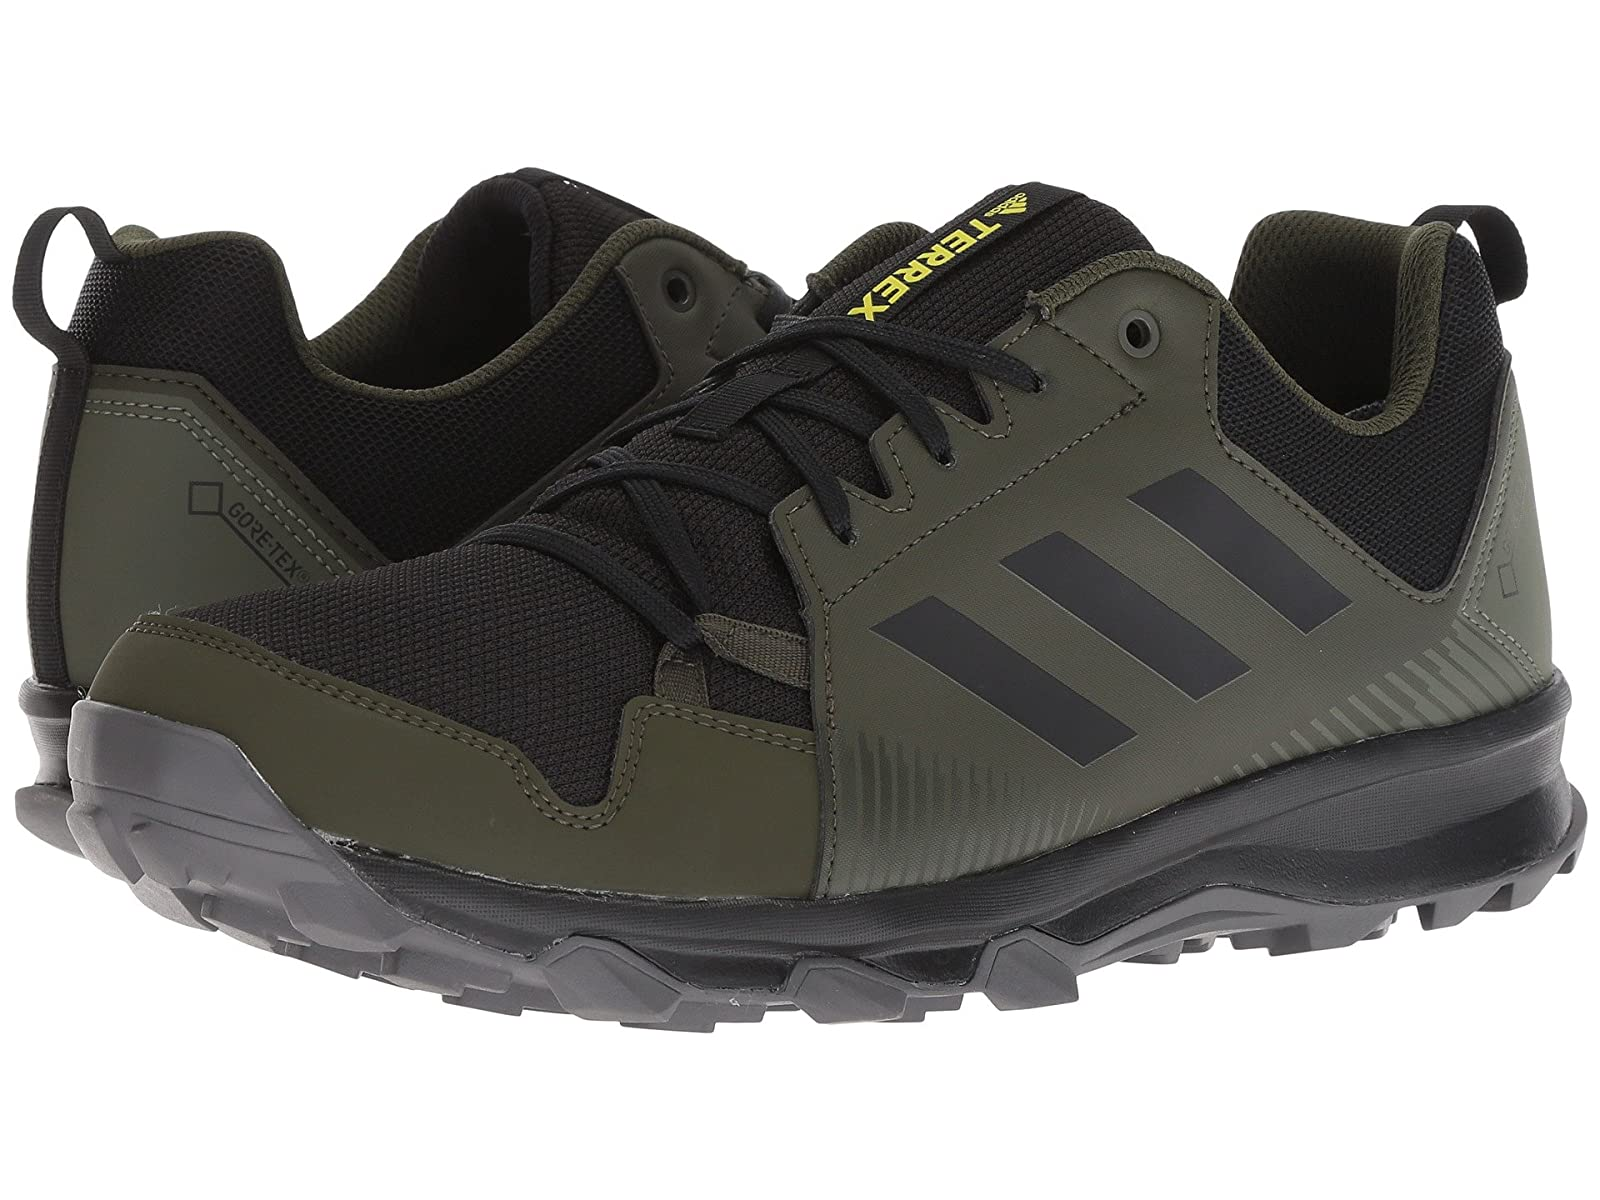 adidas Outdoor Terrex Tracerocker GTX®Atmospheric grades have affordable shoes